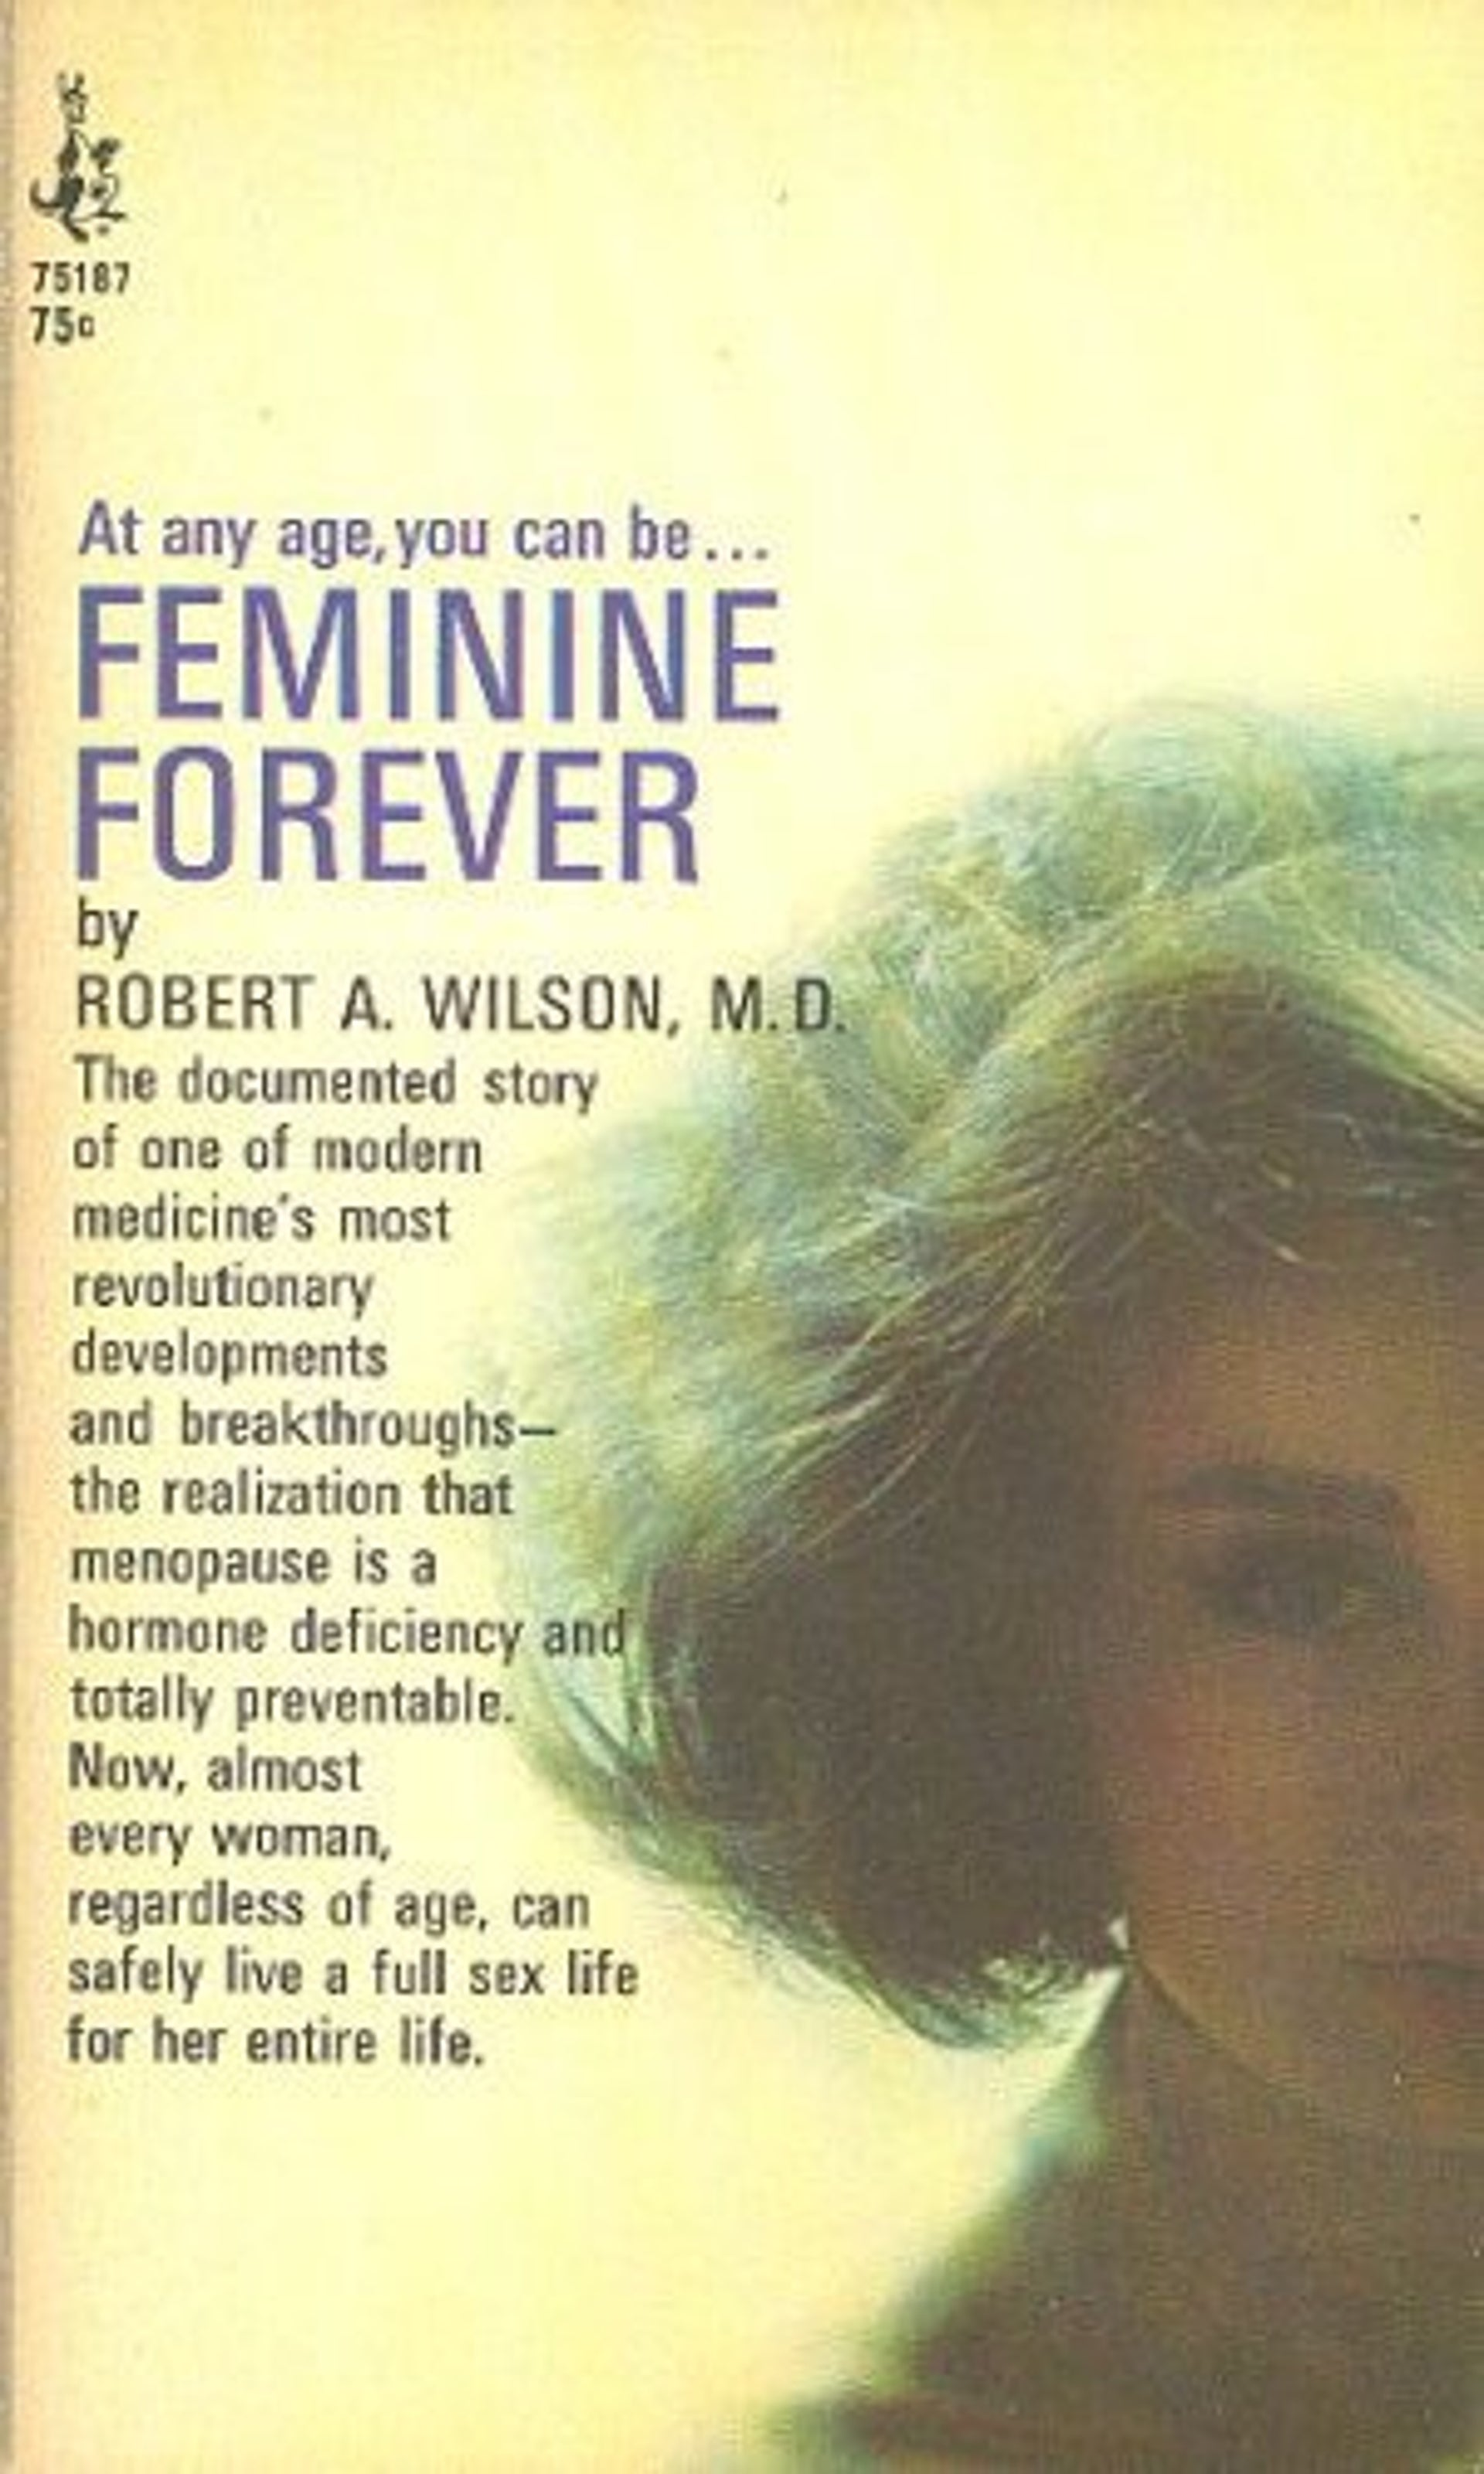 The cover of Robert Wilson 1968 book 'Feminine Forever.'